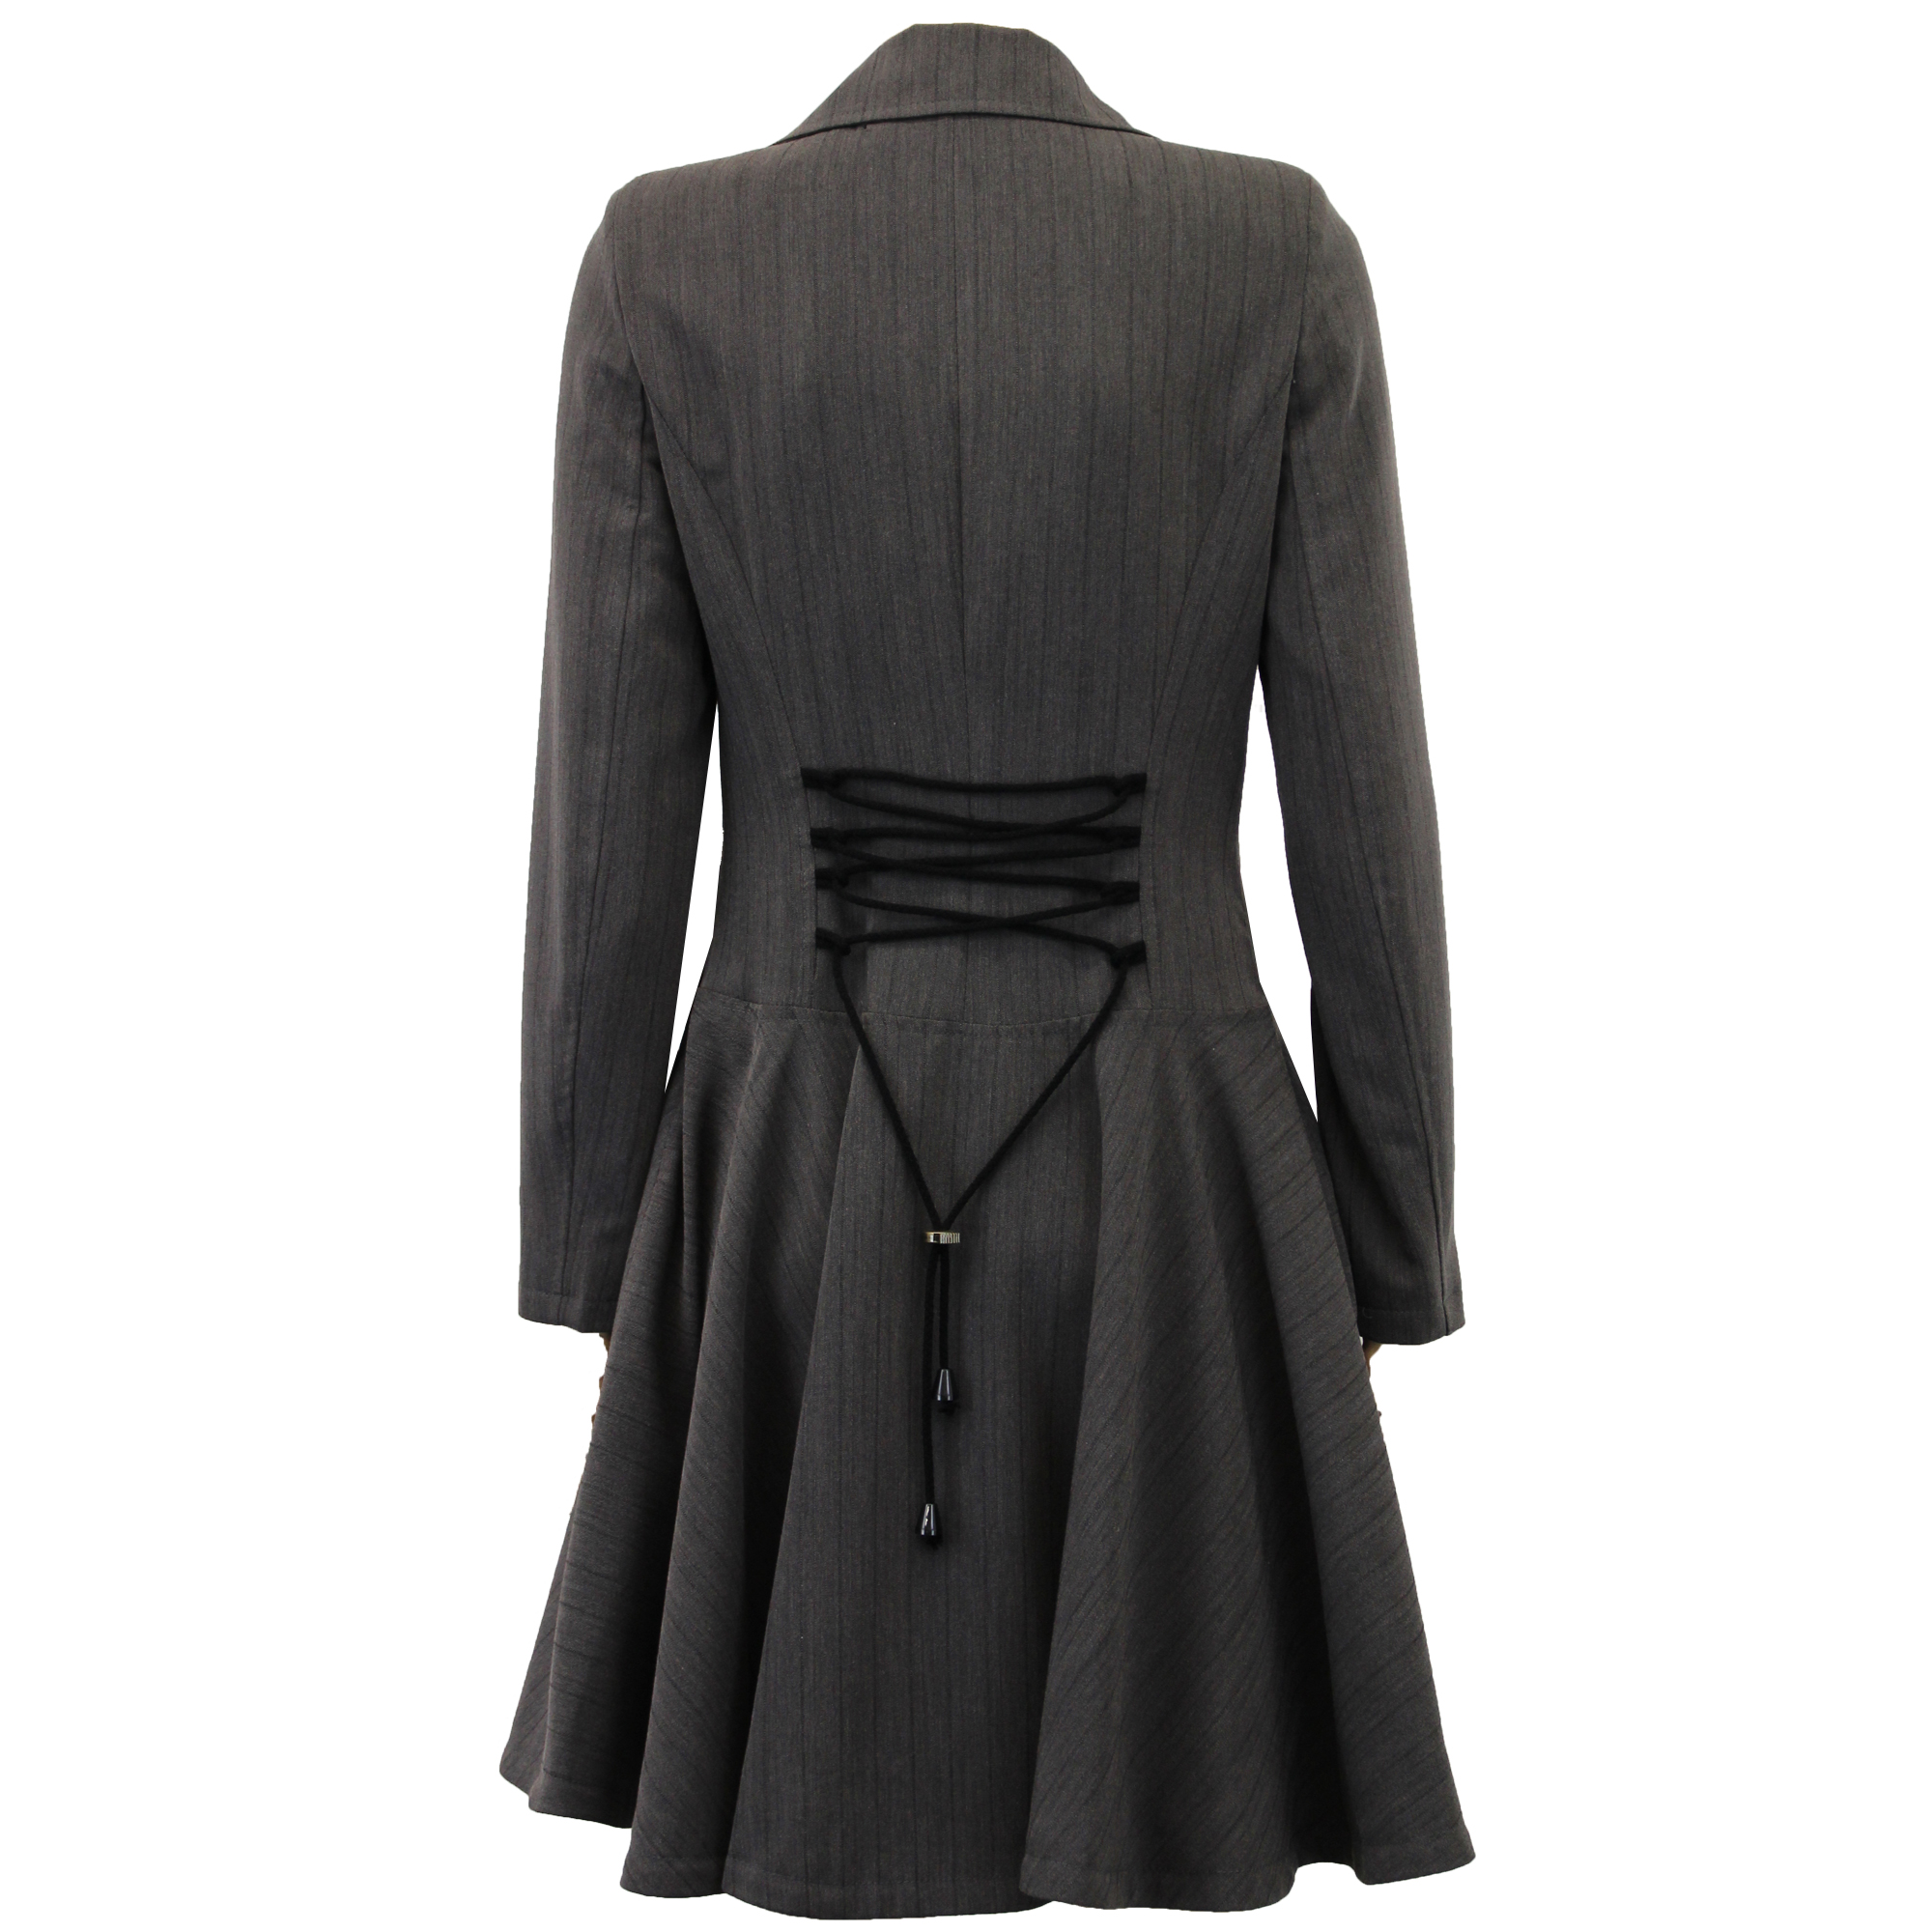 Ladies Coat Women Jacket Flared Double Breasted Trench ...